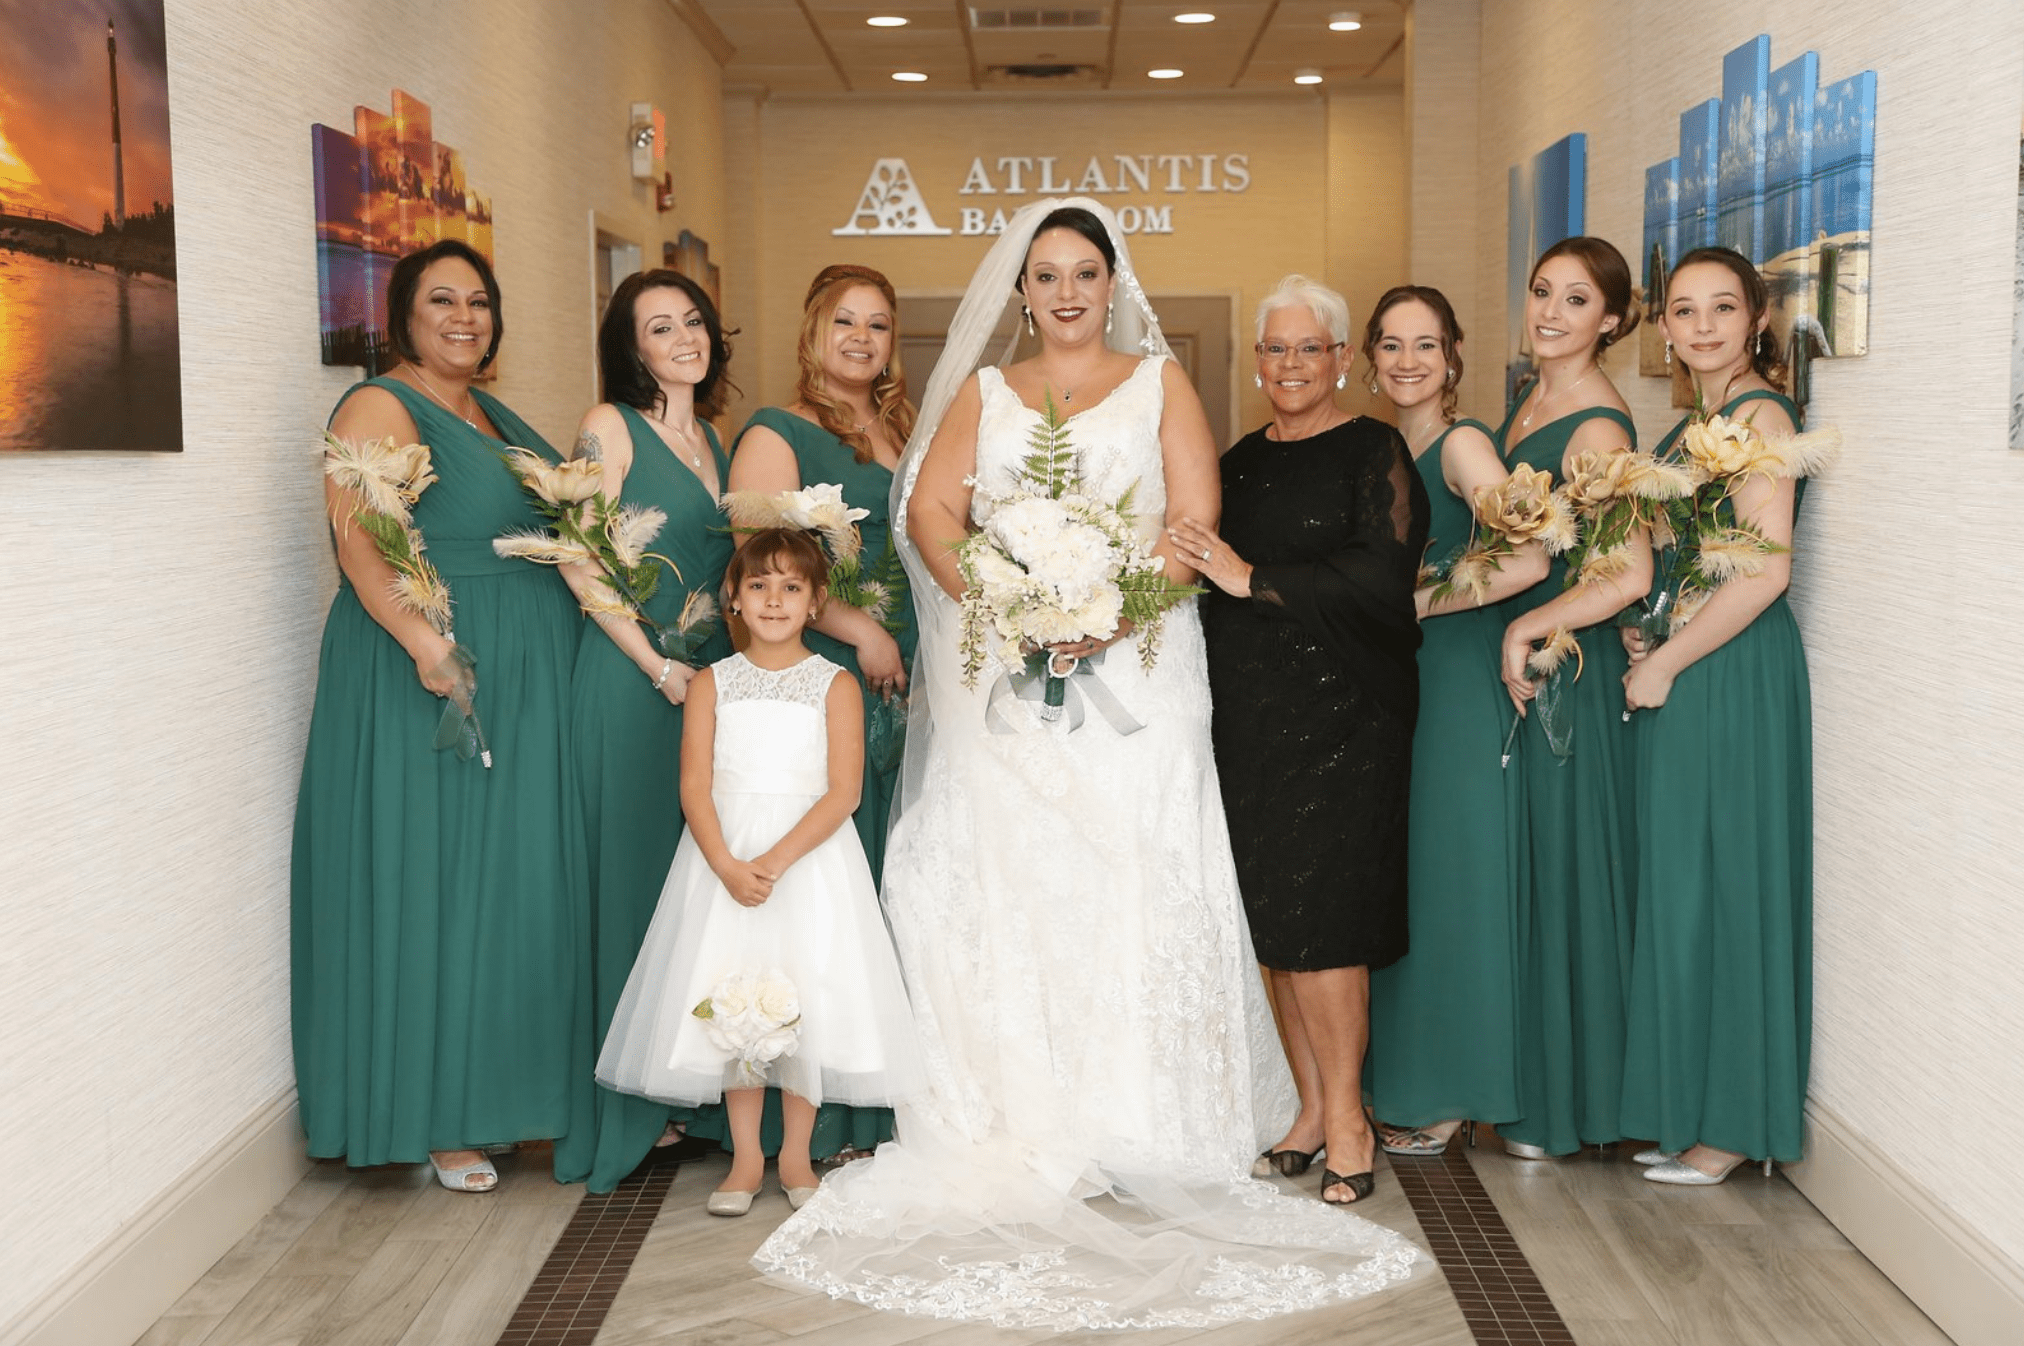 Atlantis Ballroom Toms River wedding